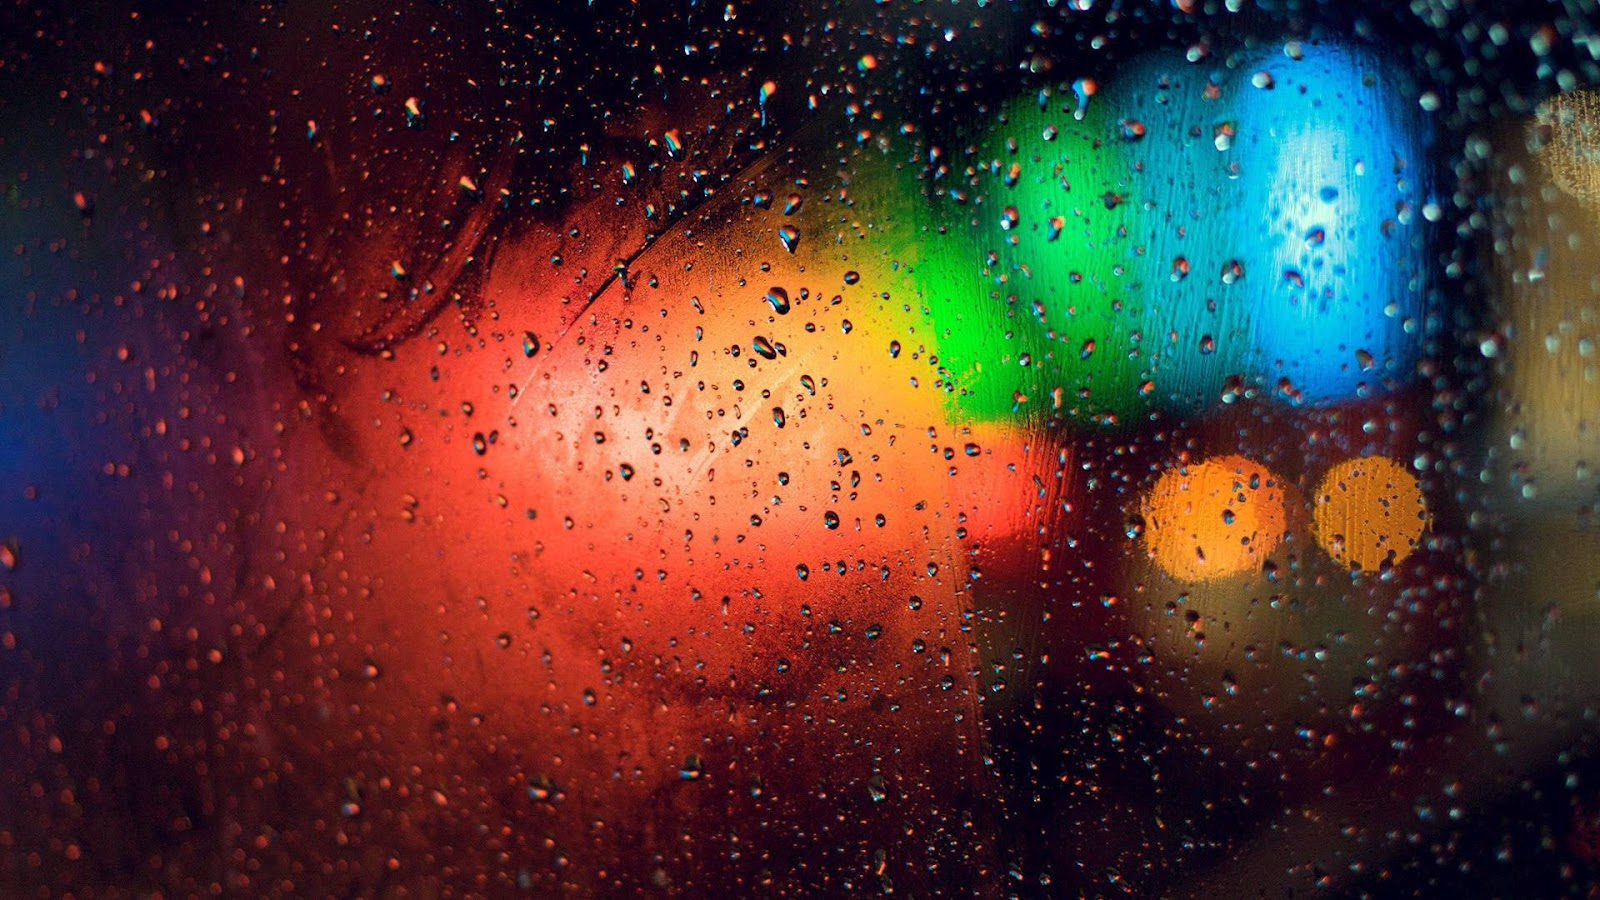 rainy night wallpapers background - photo #15